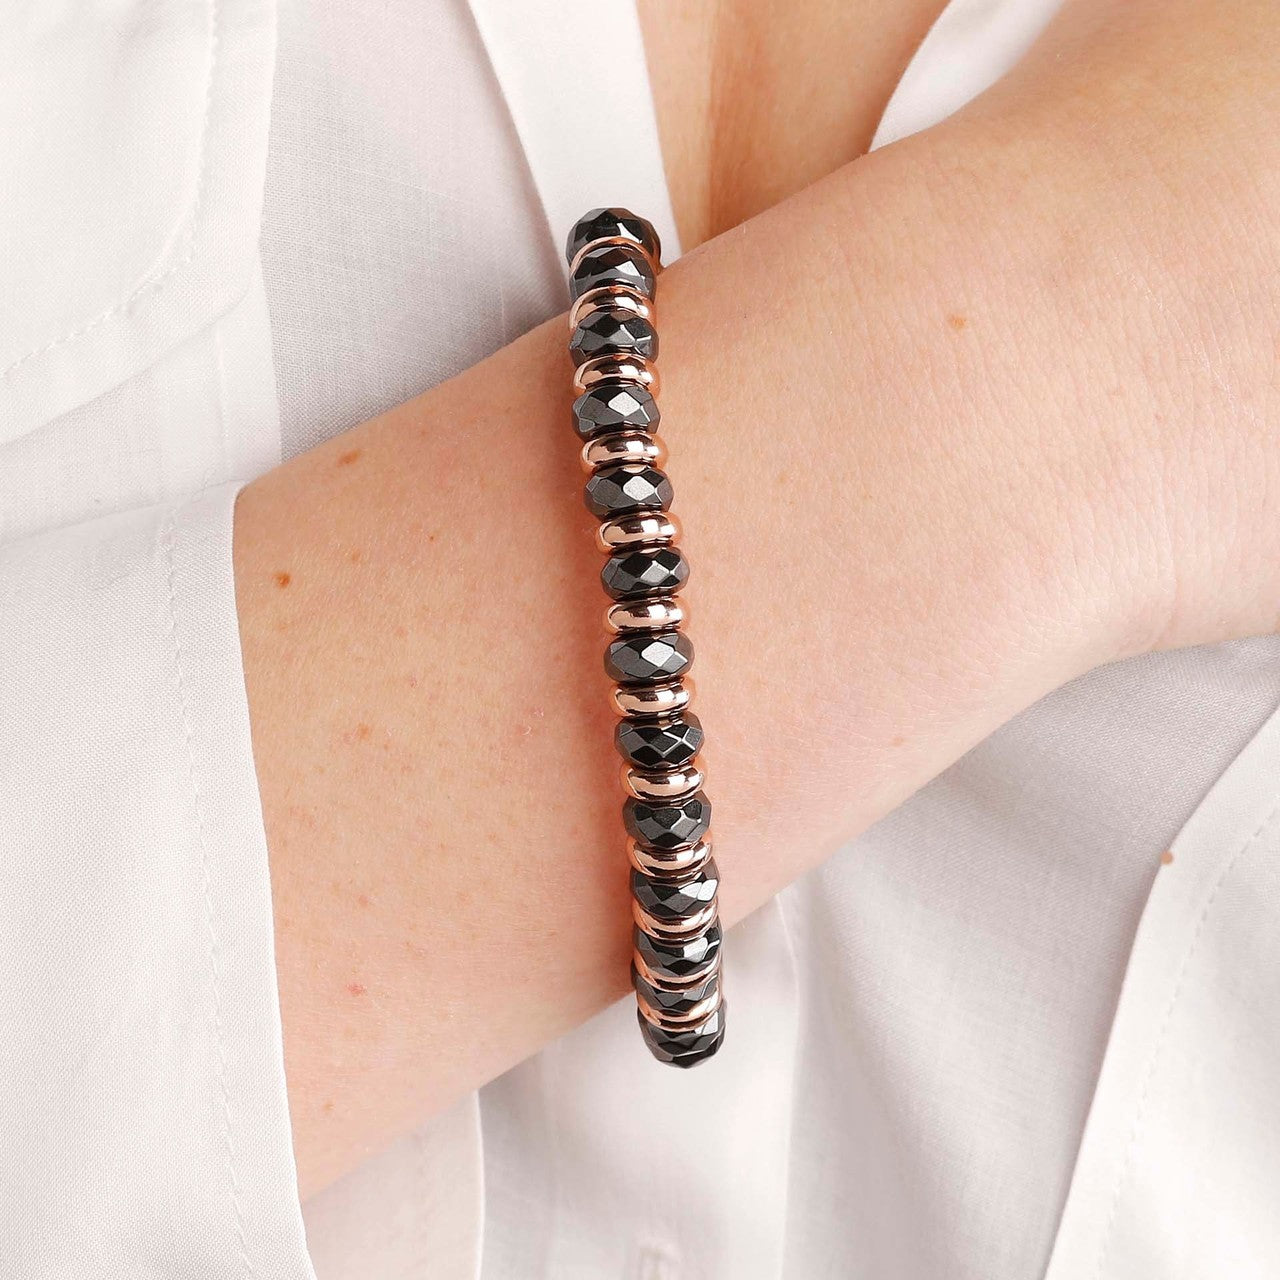 worn Hematite stretch bracelet